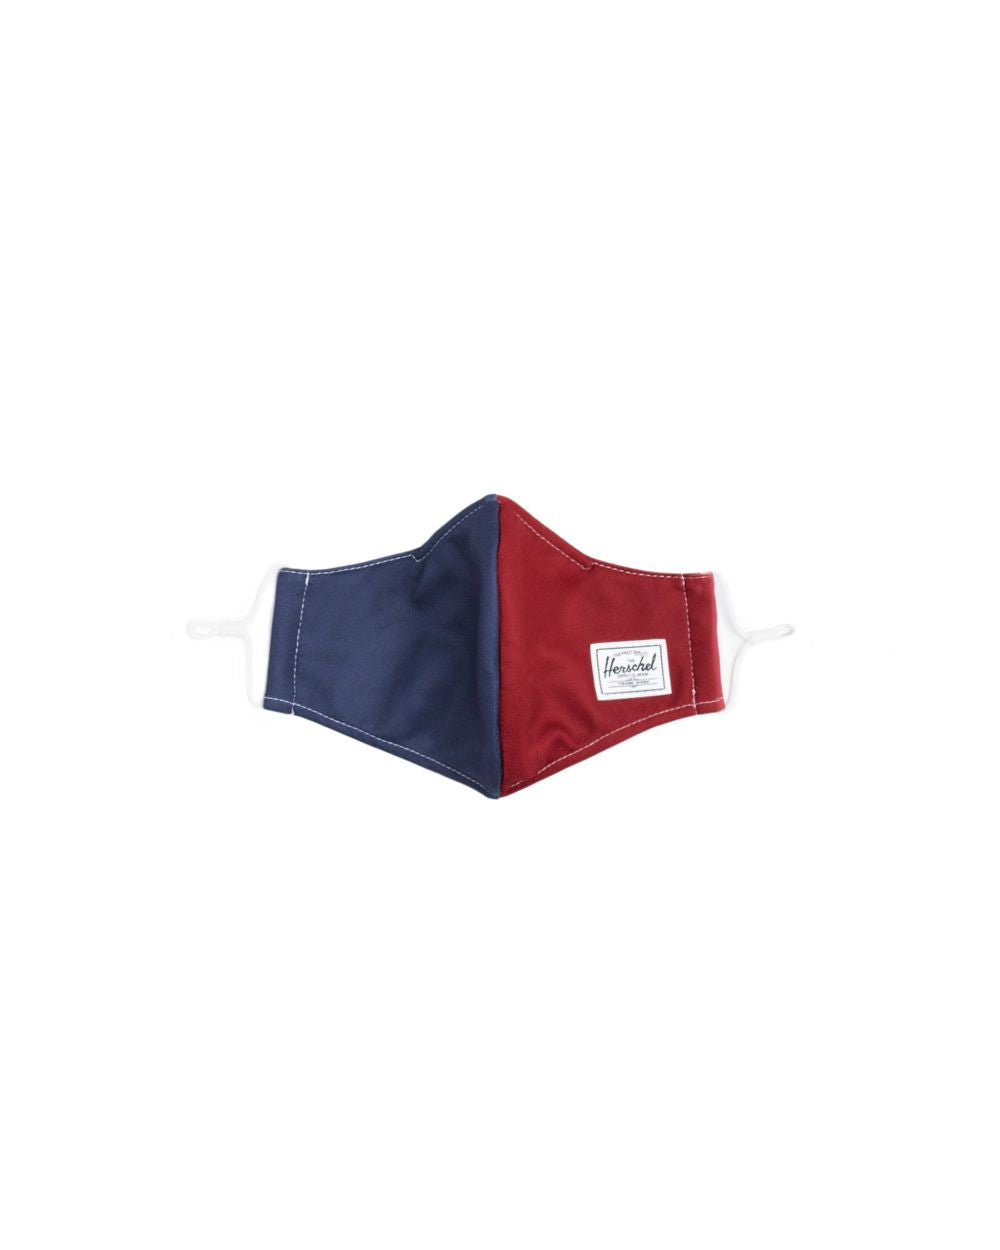 HERSCHEL MASKS CLASSIC FITTED FACE MASK - NAVY/RED